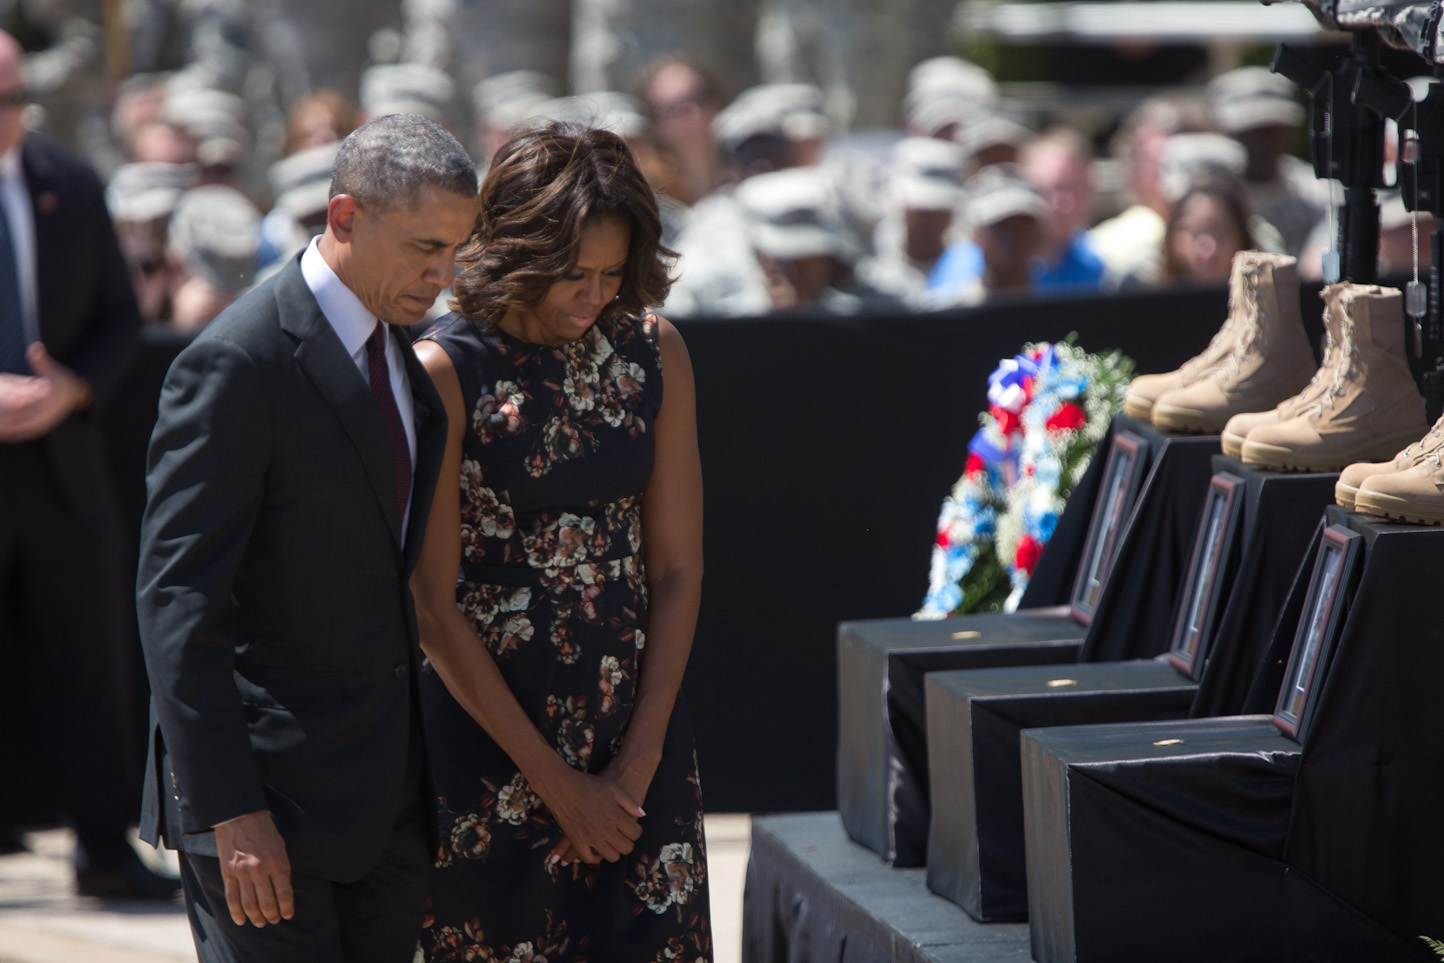 President Barack Obama and First Lady Michelle Obama depart after the President placed a coin on each of the three boxes for those who died, during a memorial service for the victims of the Fort Hood shootings.